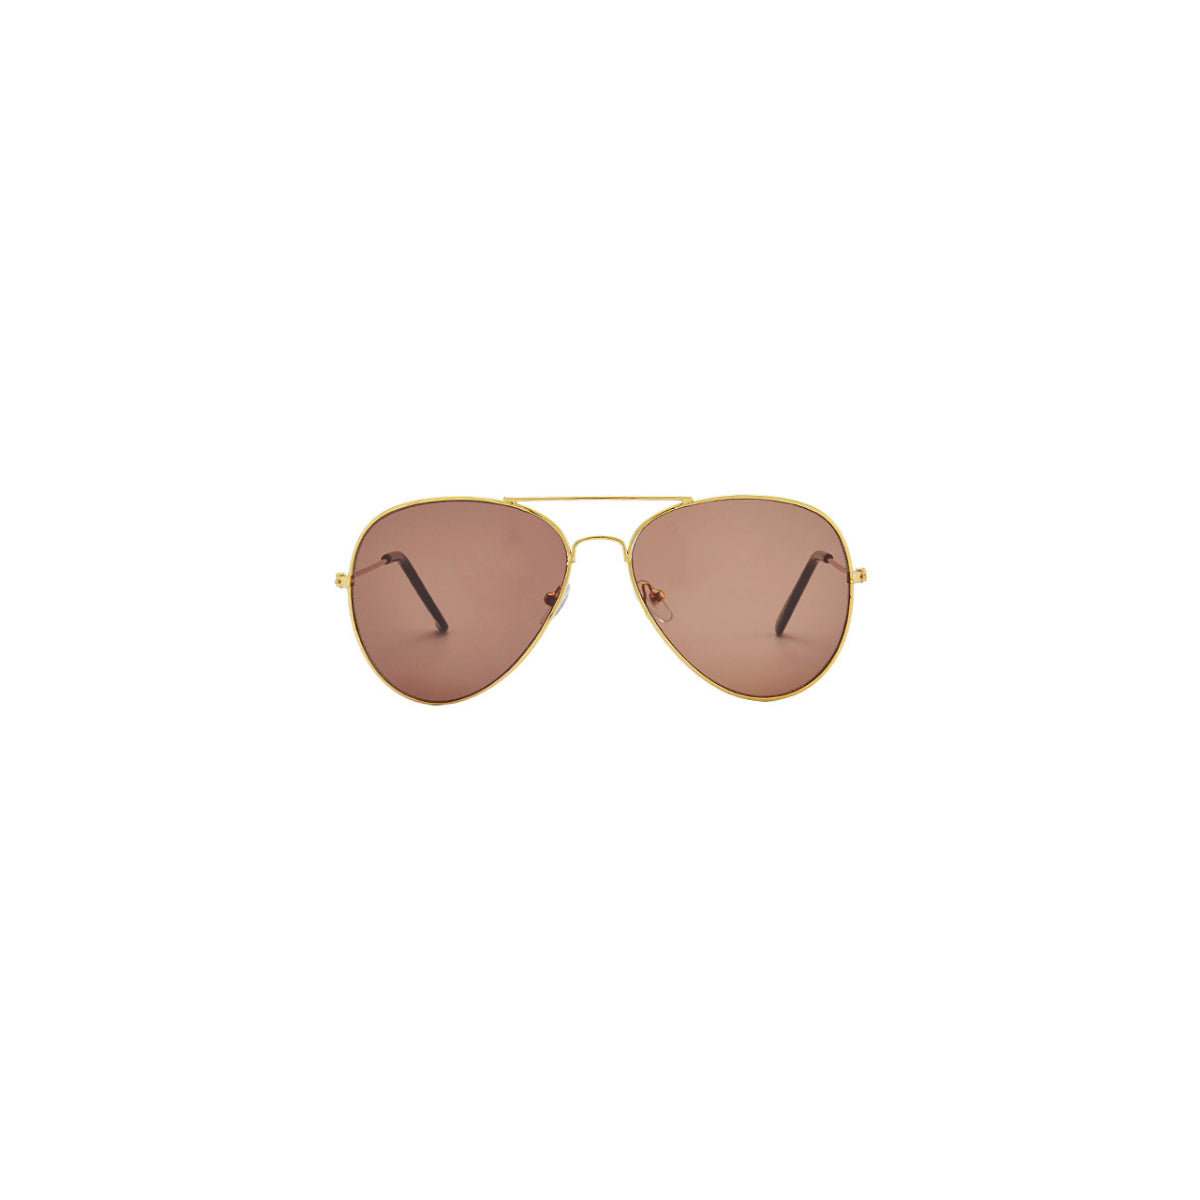 shopify-Vintage Style Aviator Mirrored Sunglasses - Silver, Blue, Black, Pink or Bronze-9